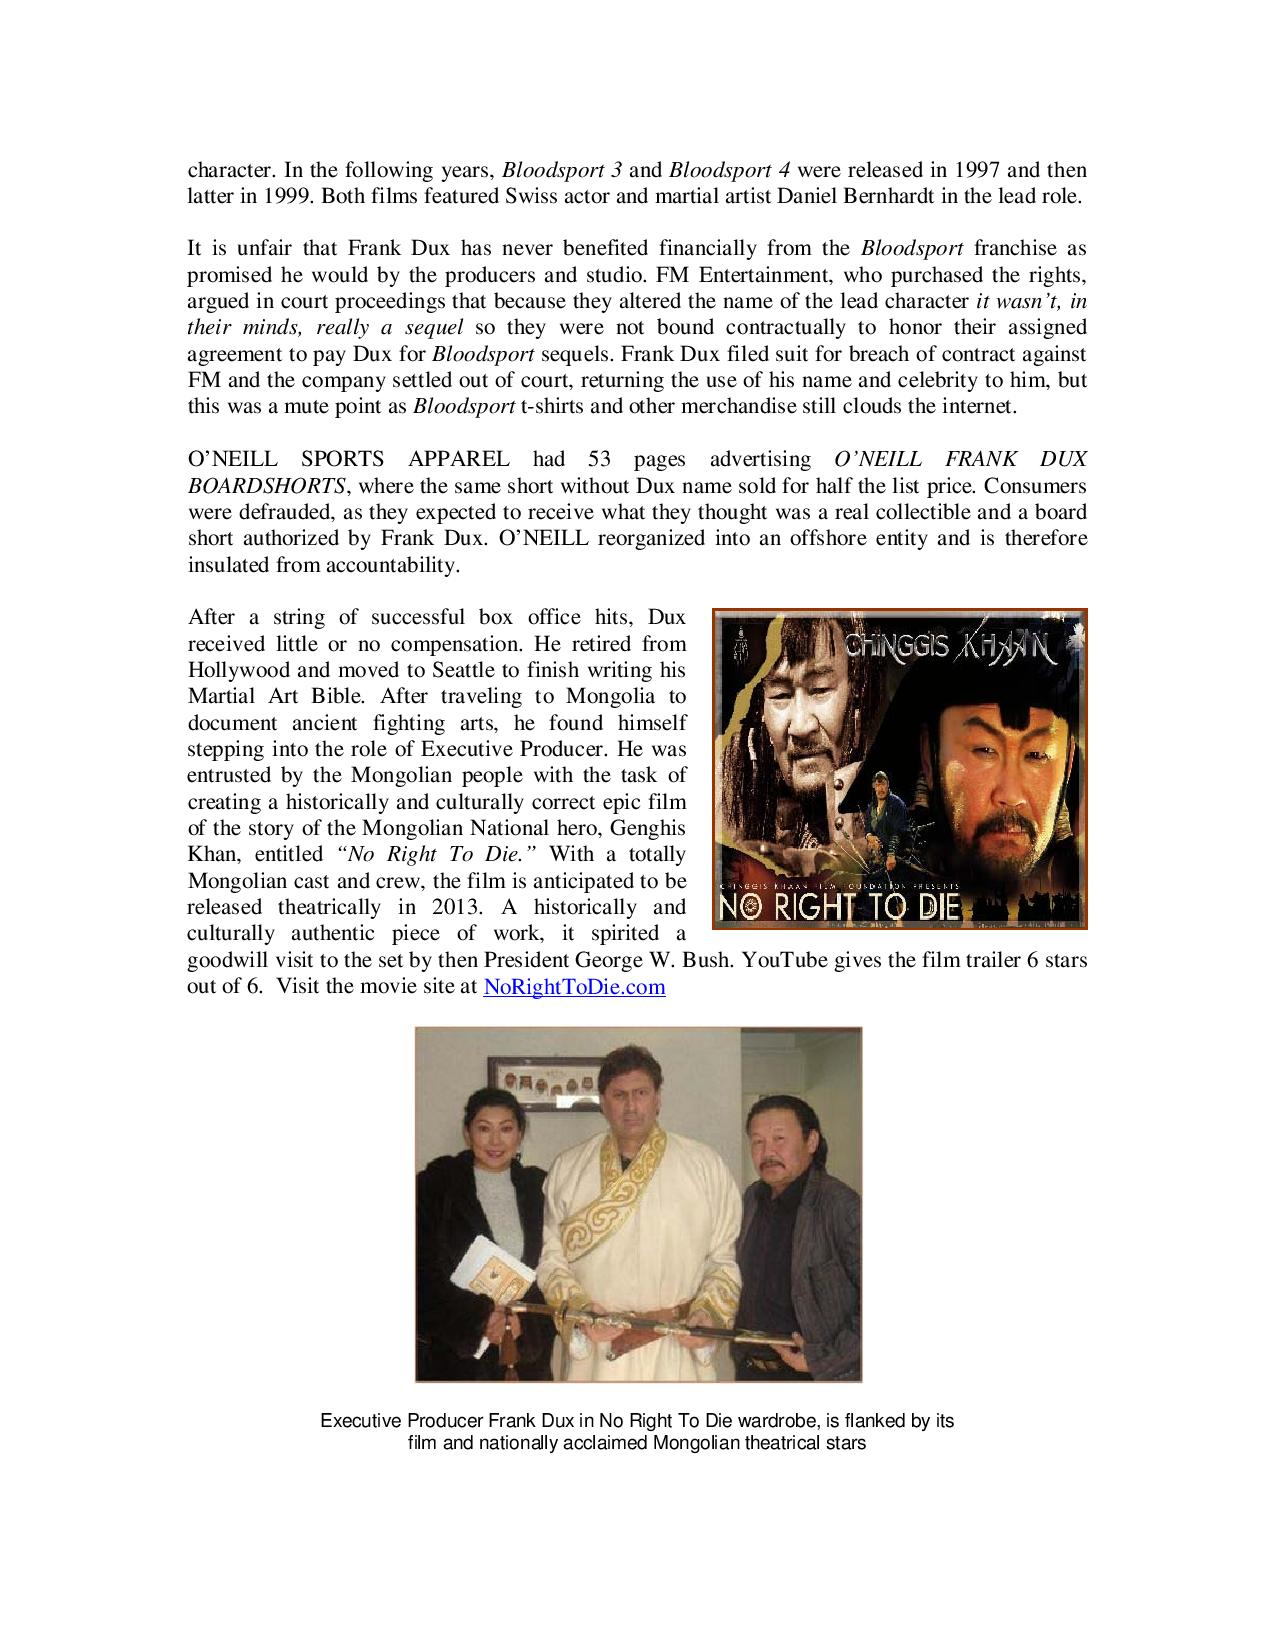 frank-dux-the-warrior-secure-page-031